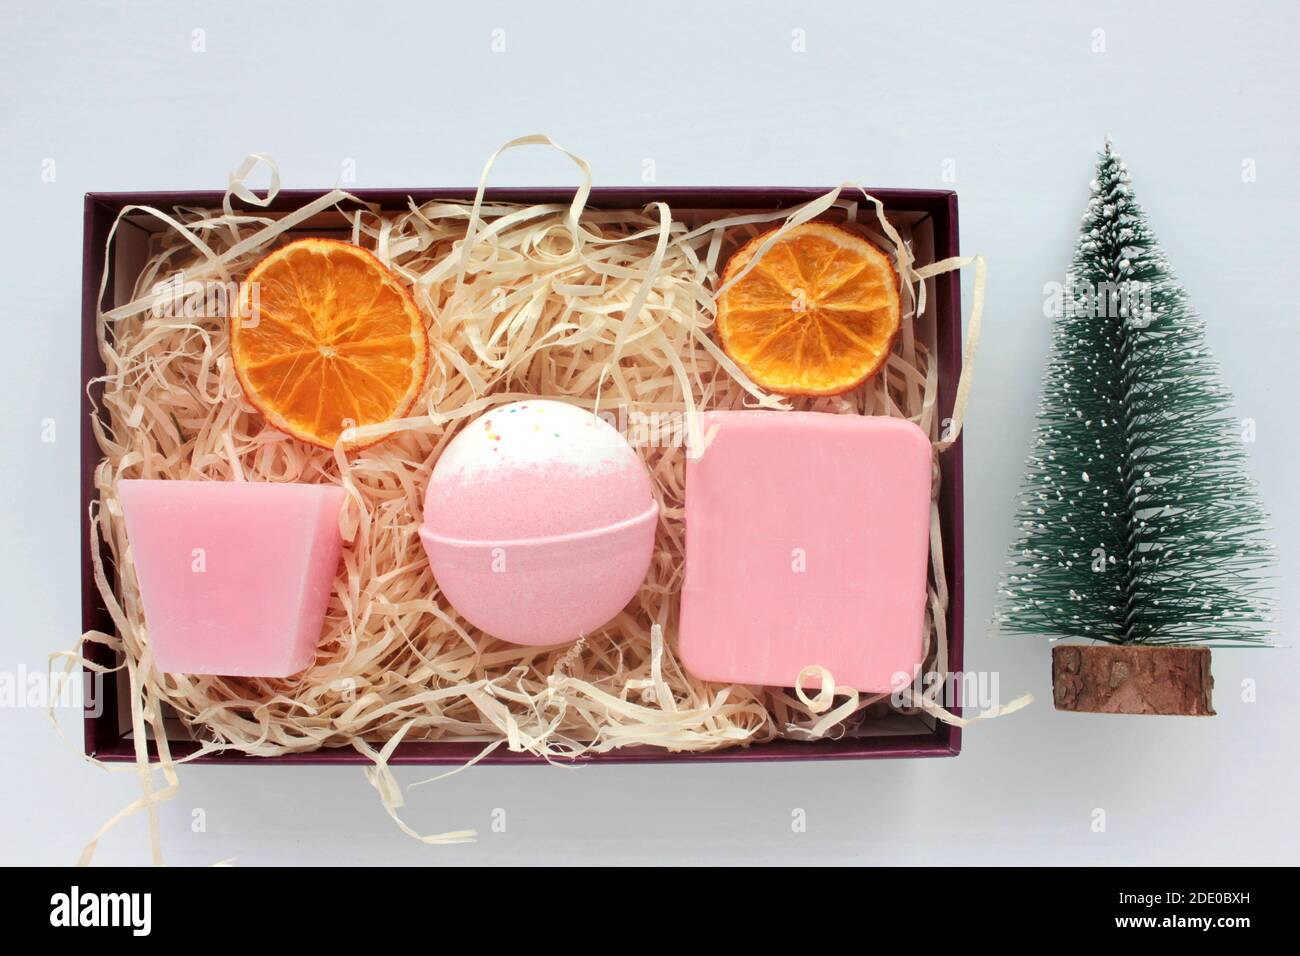 Spa Gift Basket With Set Of Organic Skin Care Products Pink Candle Bath Bomb And Handmade Rose Soap Bar In Open Gift Box On White Background Stock Photo Alamy